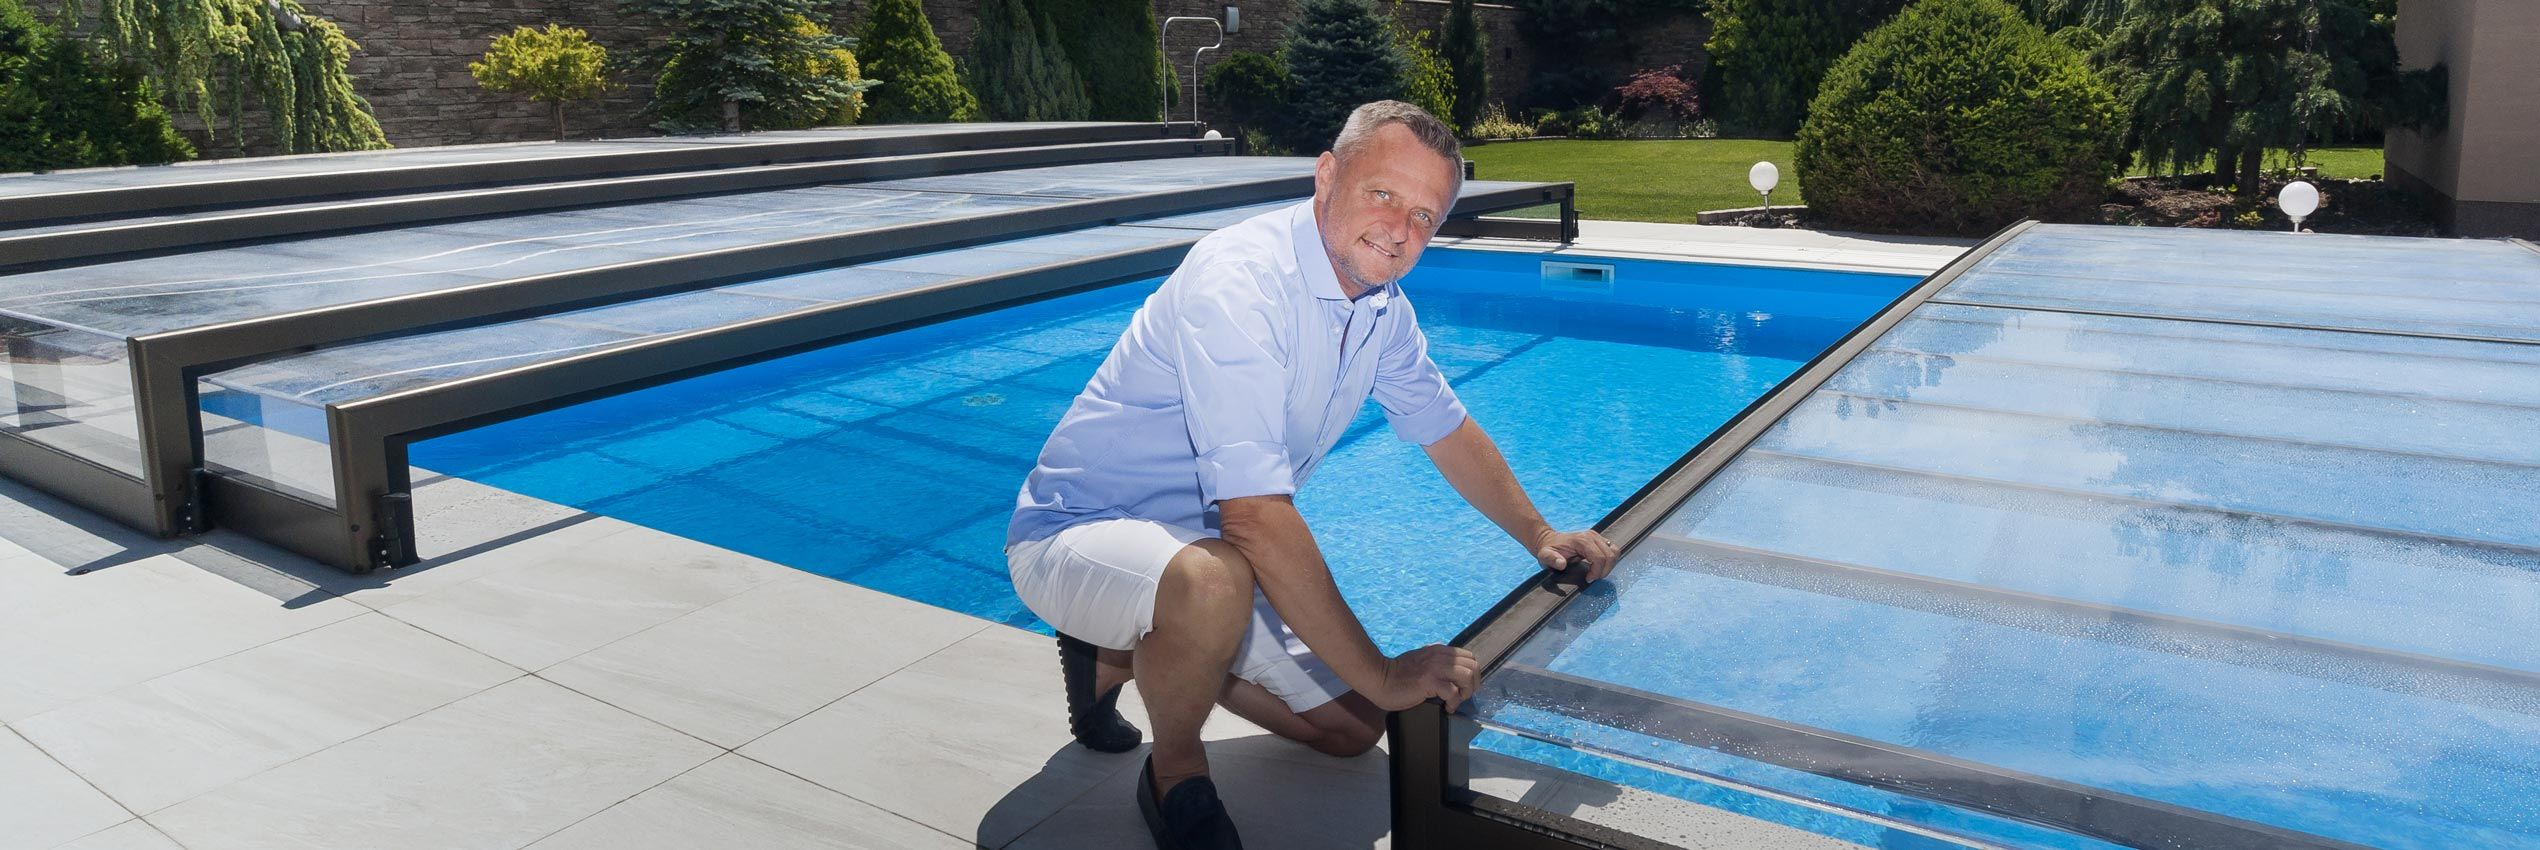 Low retractable pool enclosures and pool covers sunrooms Retractable swimming pool enclosures